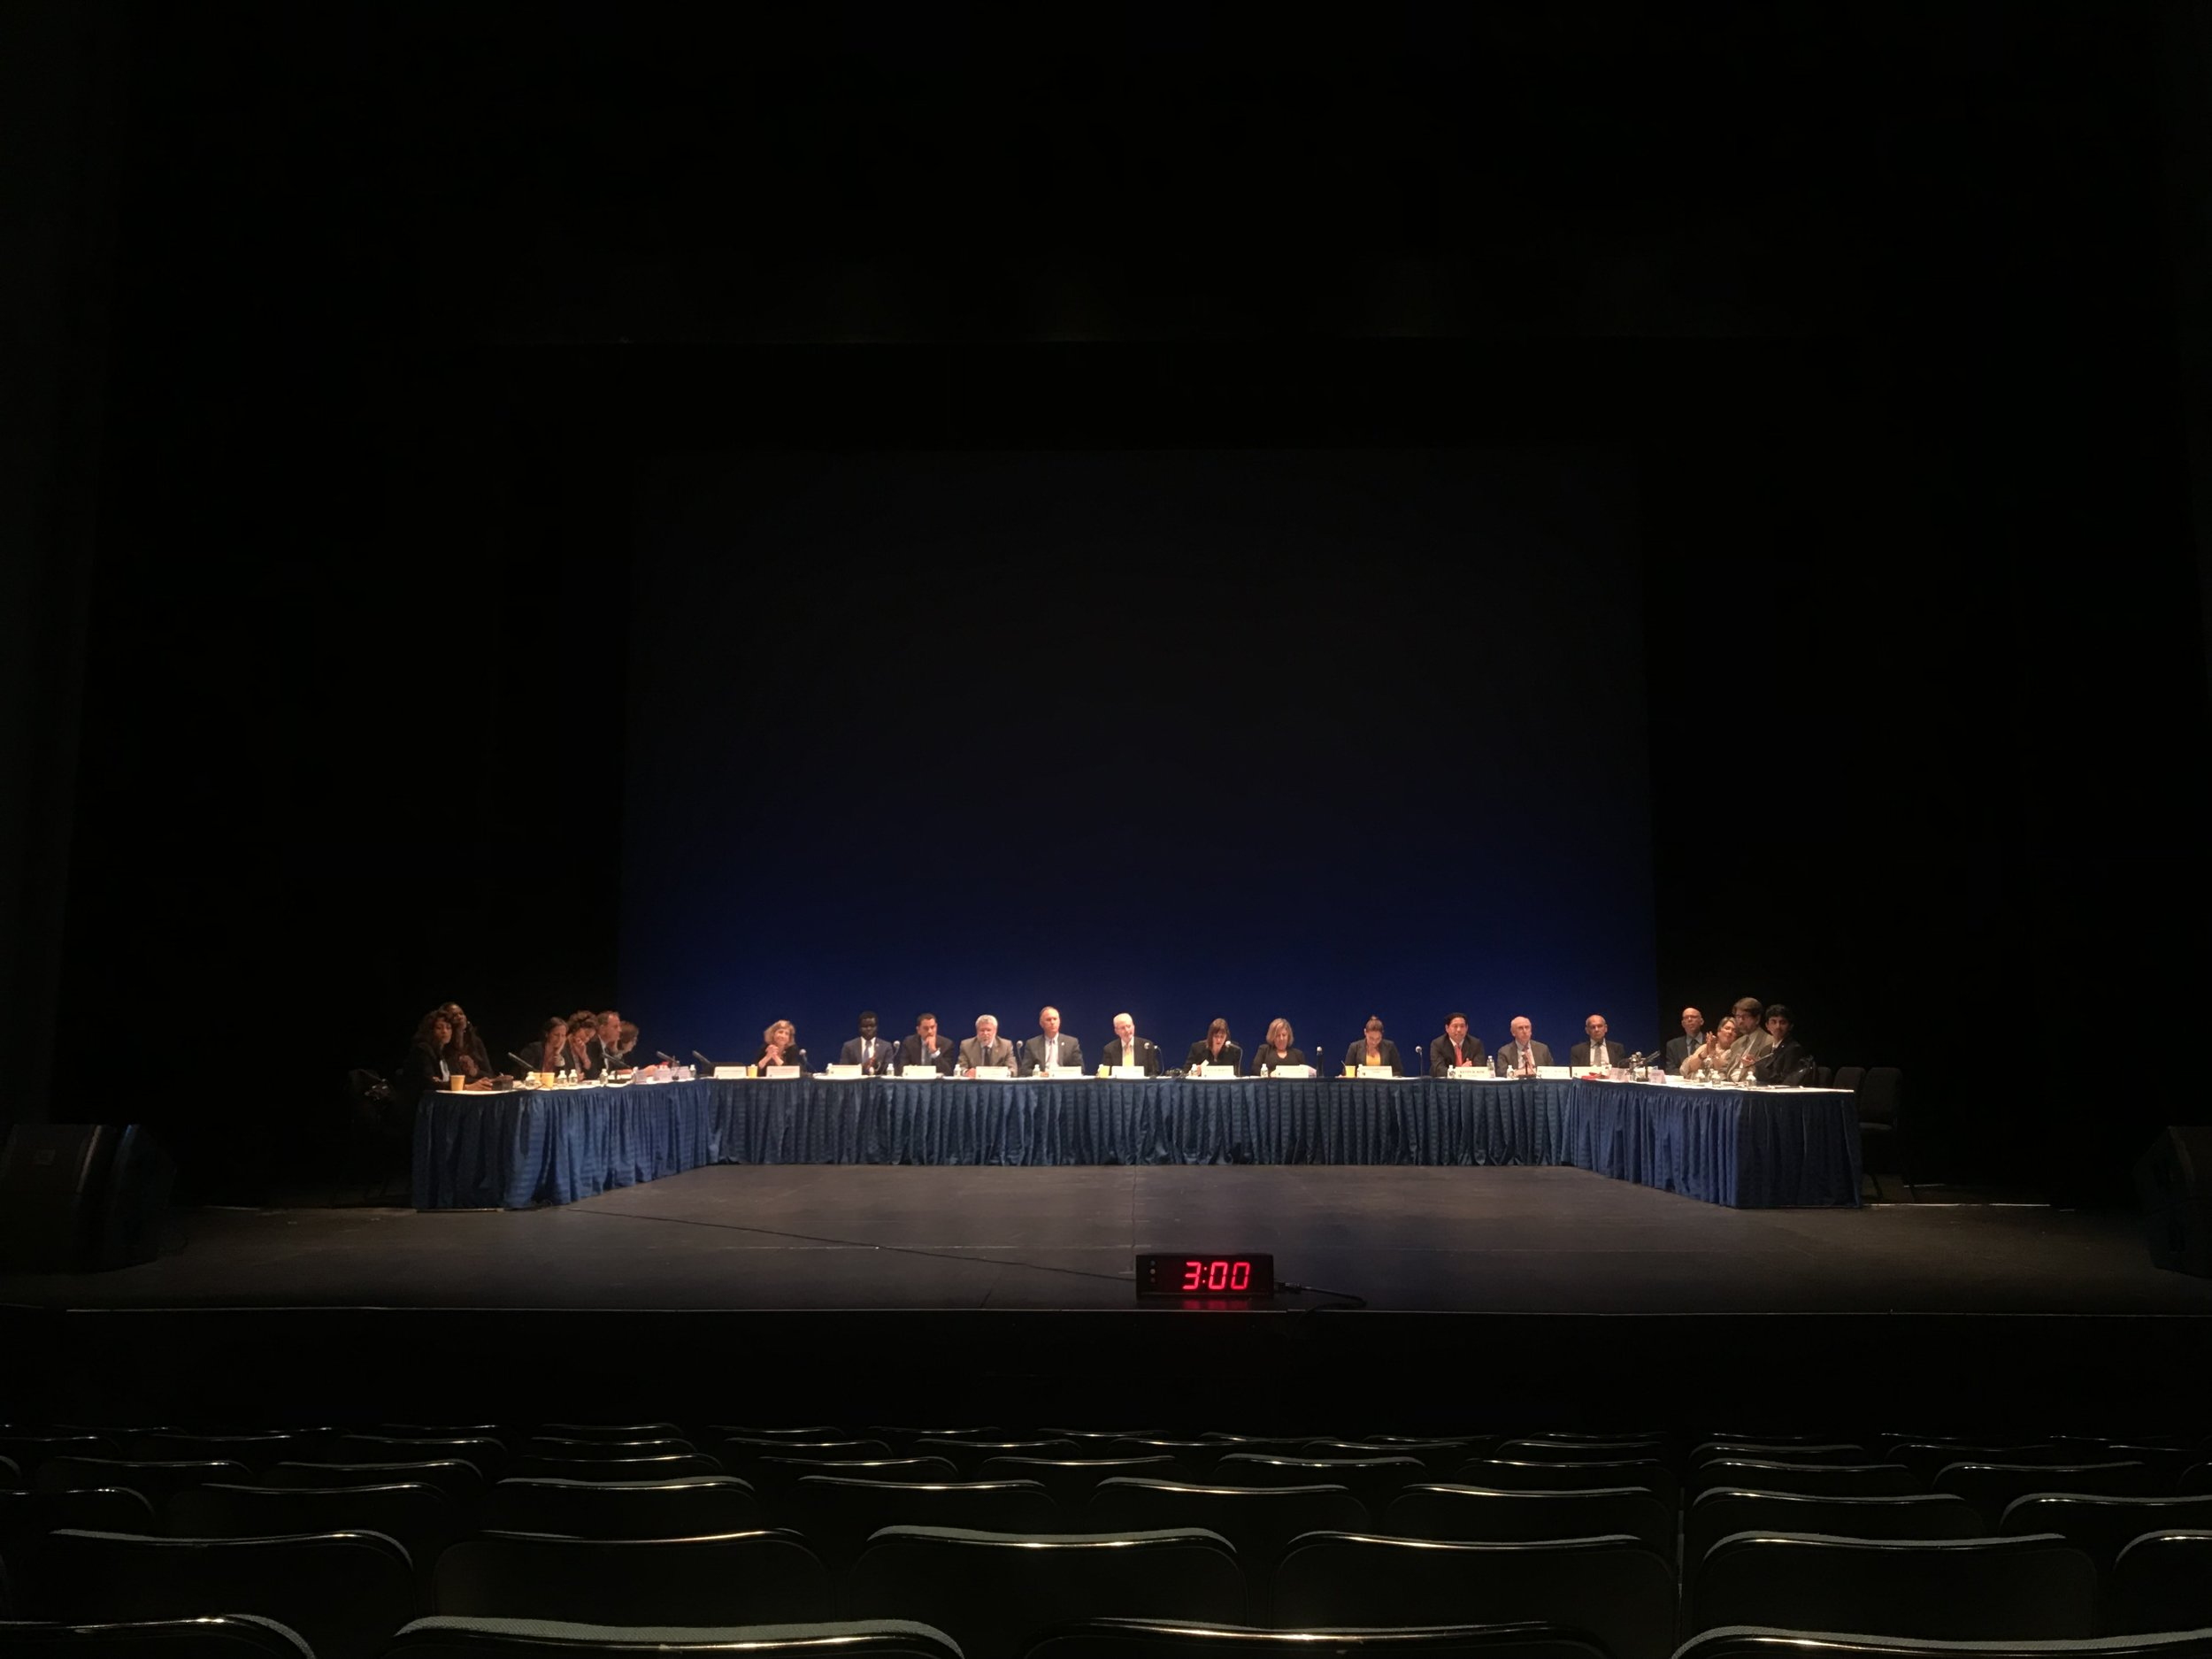 The CUNY Board of Trustees met at Hostos Community College in the Bronx.